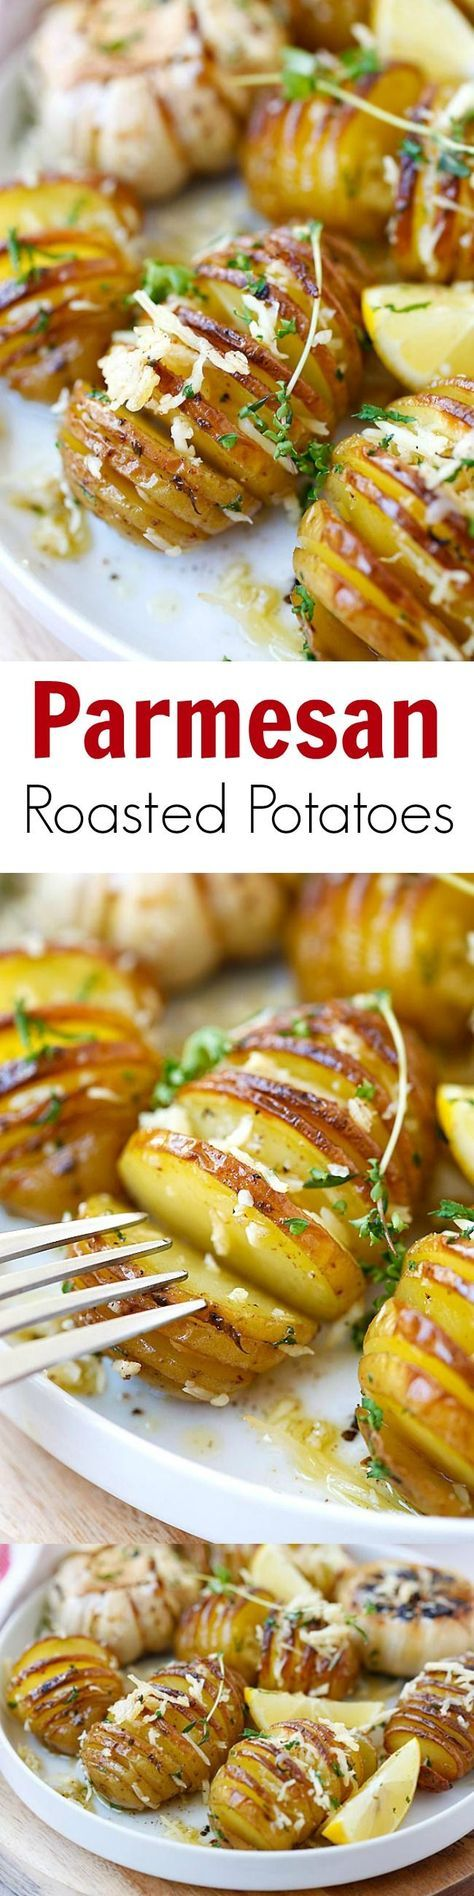 Parmesan Roasted Potatoes – the easiest and BEST roasted potatoes with Parmesan cheese, butter and herbs. SO good you'll want to make it every day!! | rasamalaysia.com